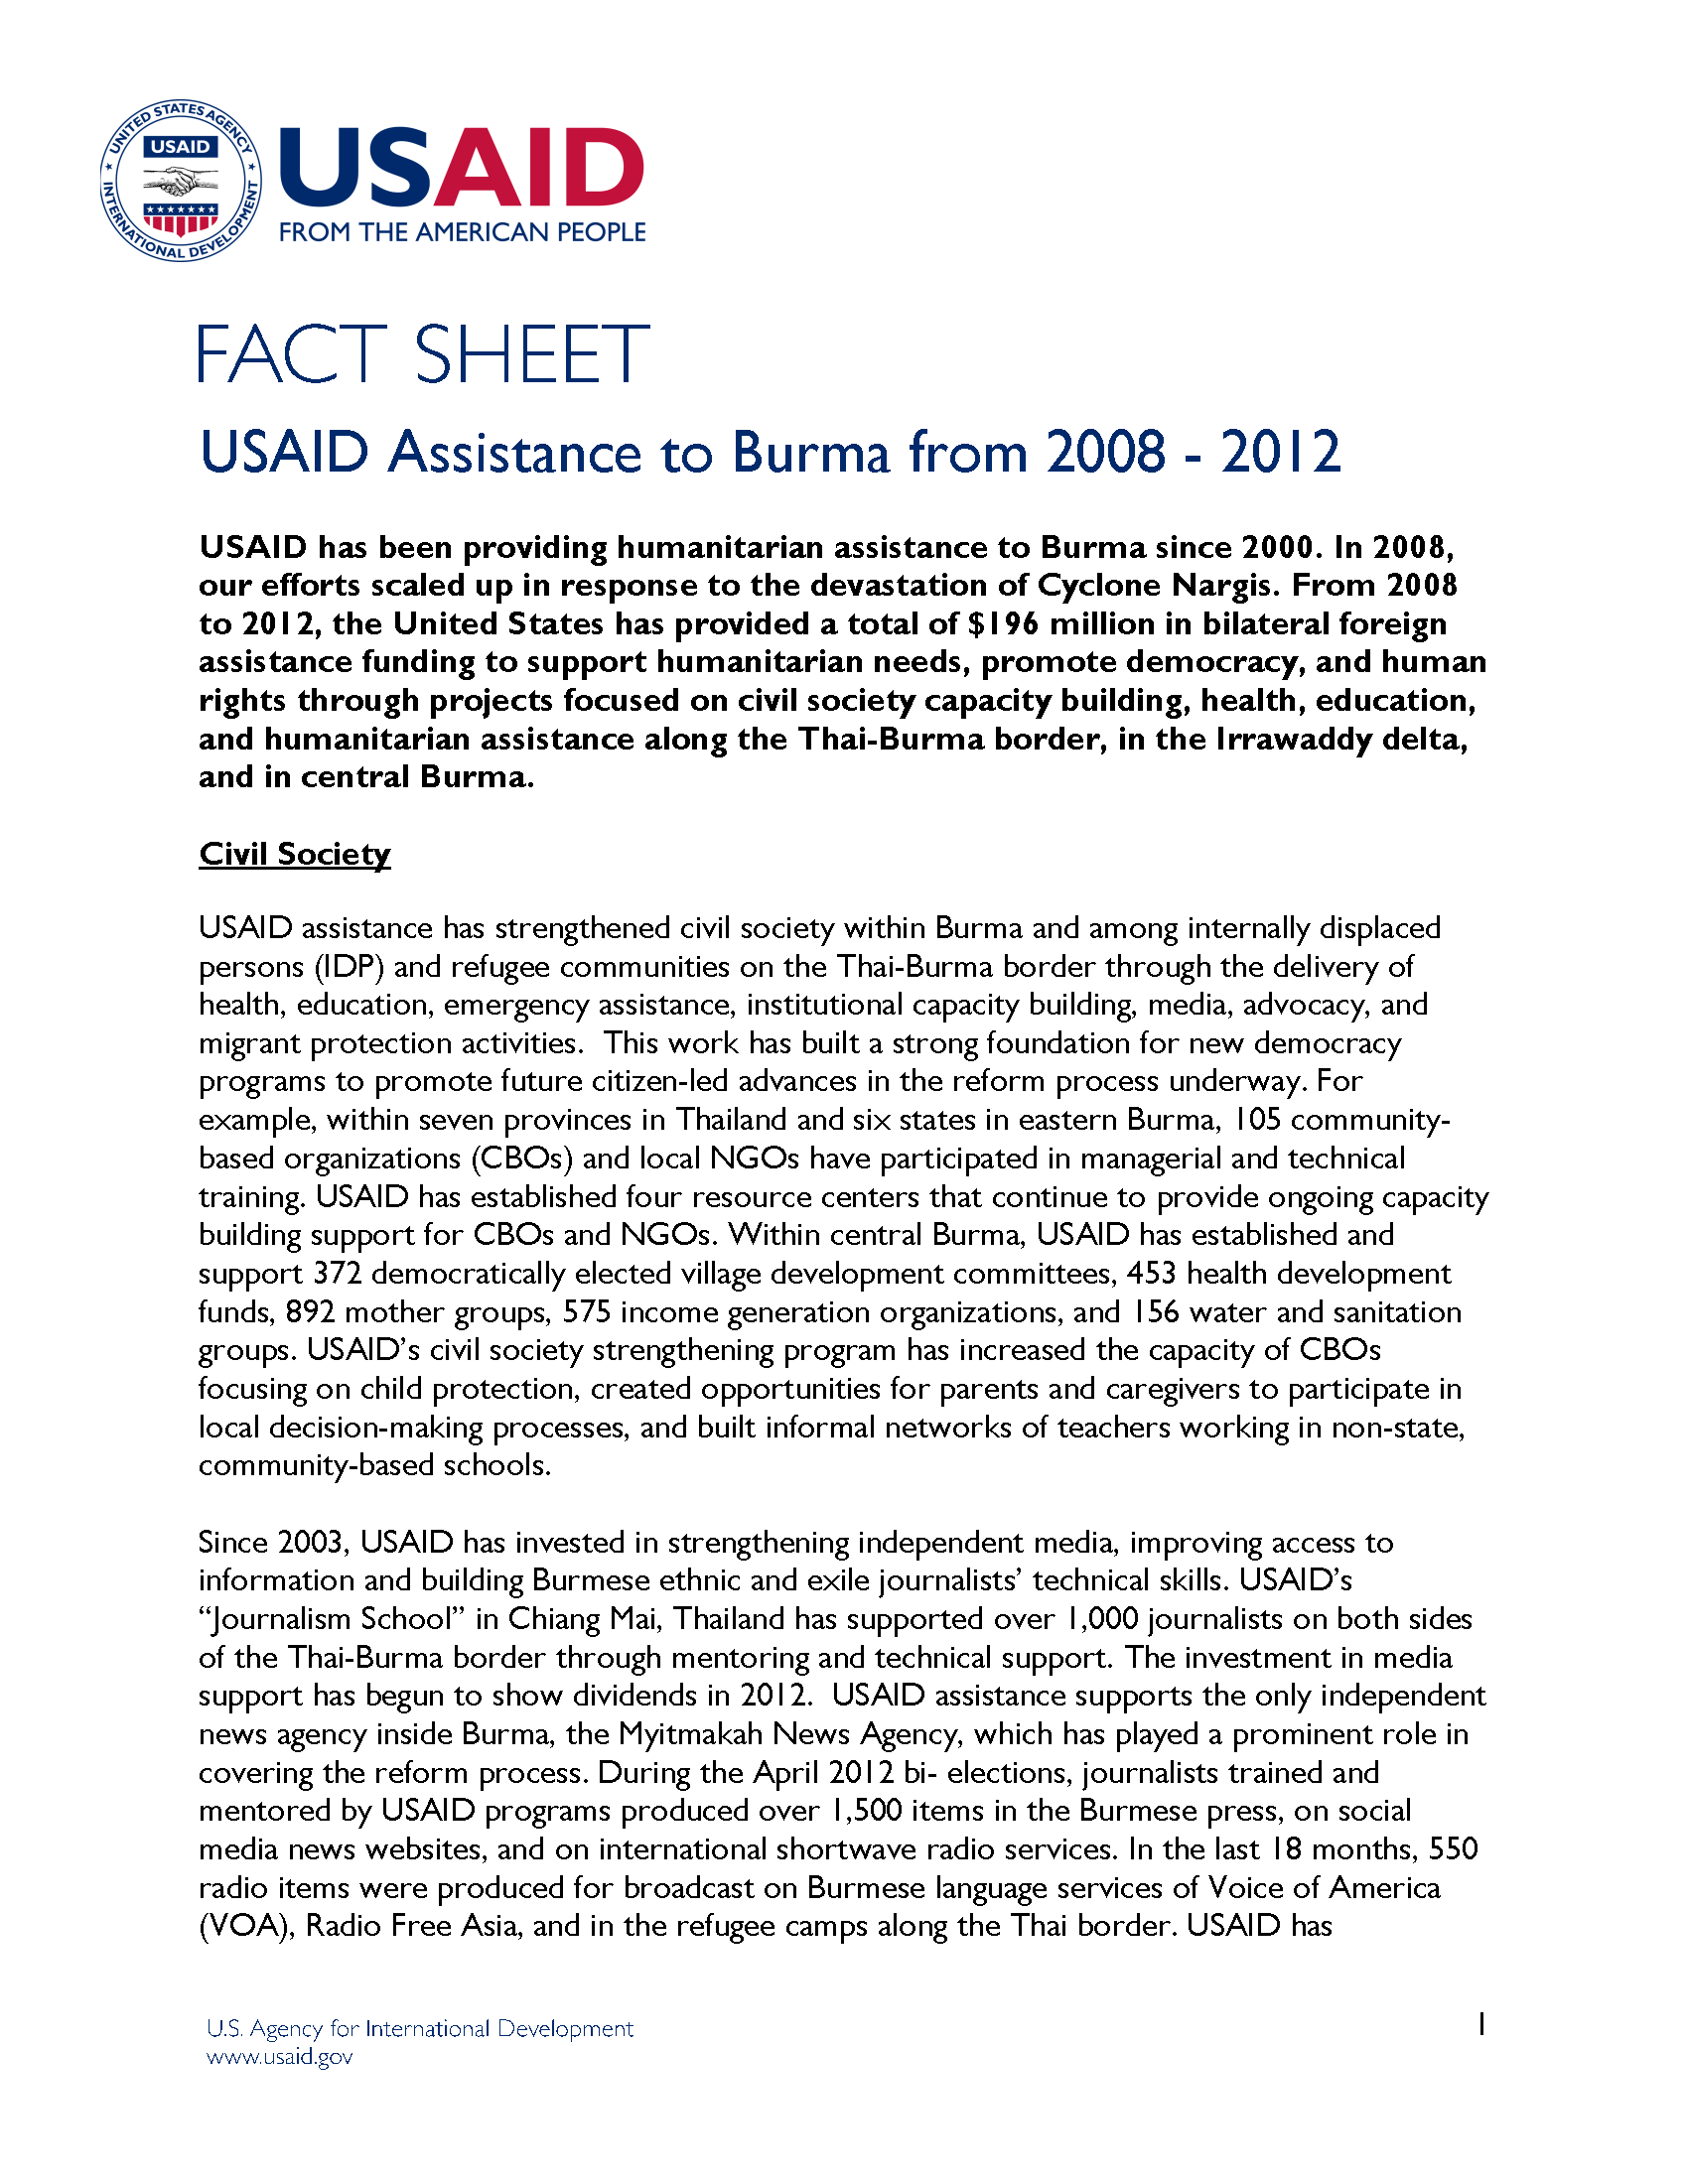 USAID Assistance to Burma from 2008 - 2012 Fact Sheet